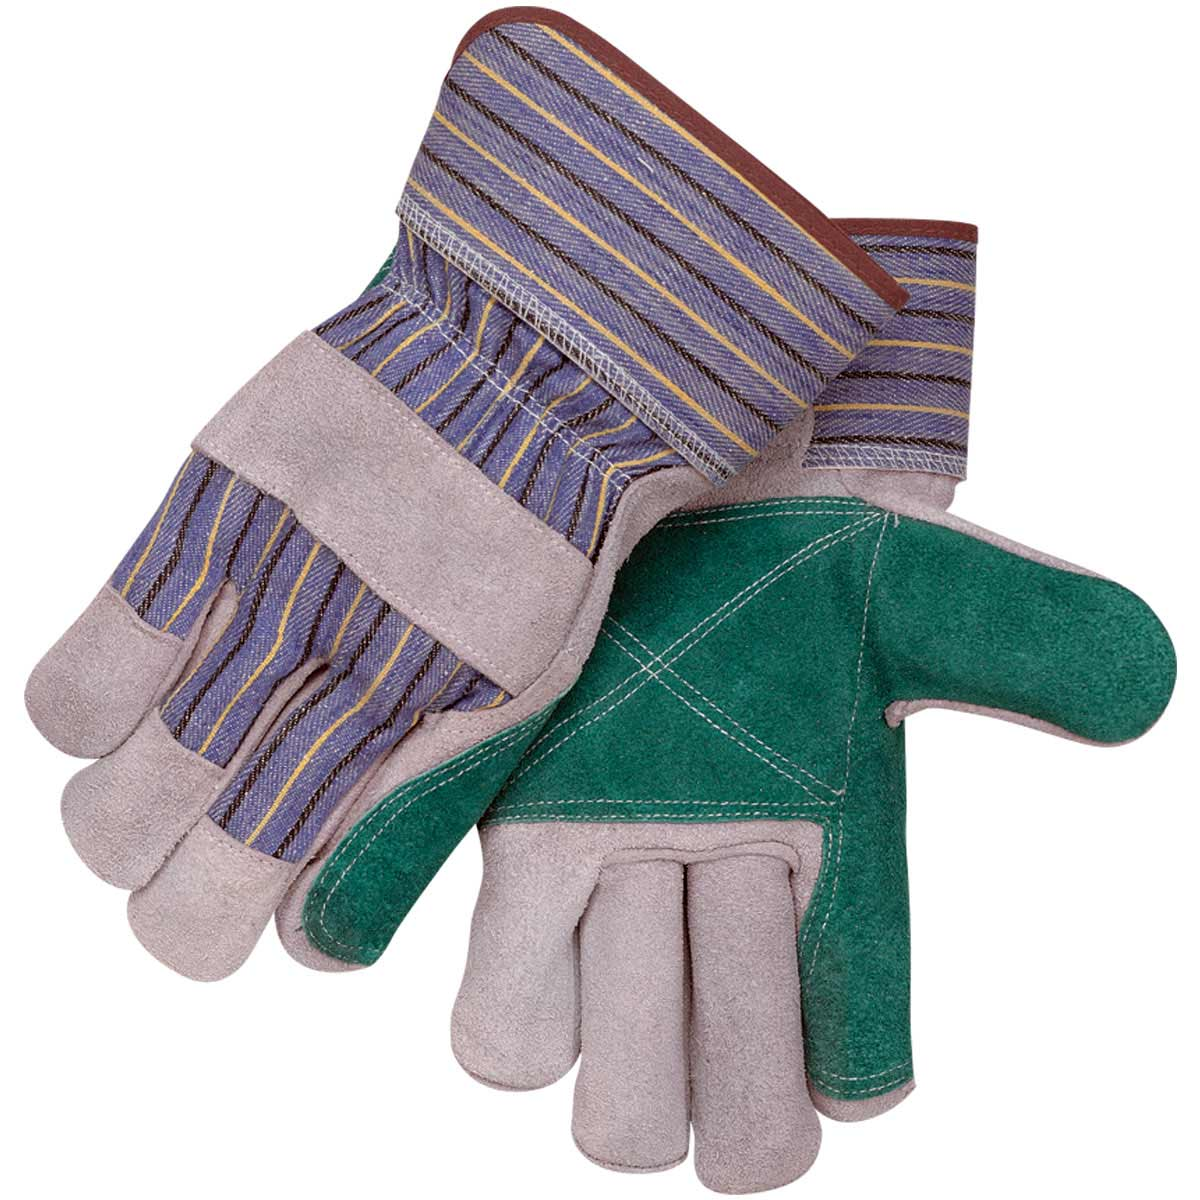 SHOULDER SPLIT COWHIDE-DOUBLE PALM SPECIALTY LEATHER PALM WORK GLOVES. Pack 12. Large. 6DP